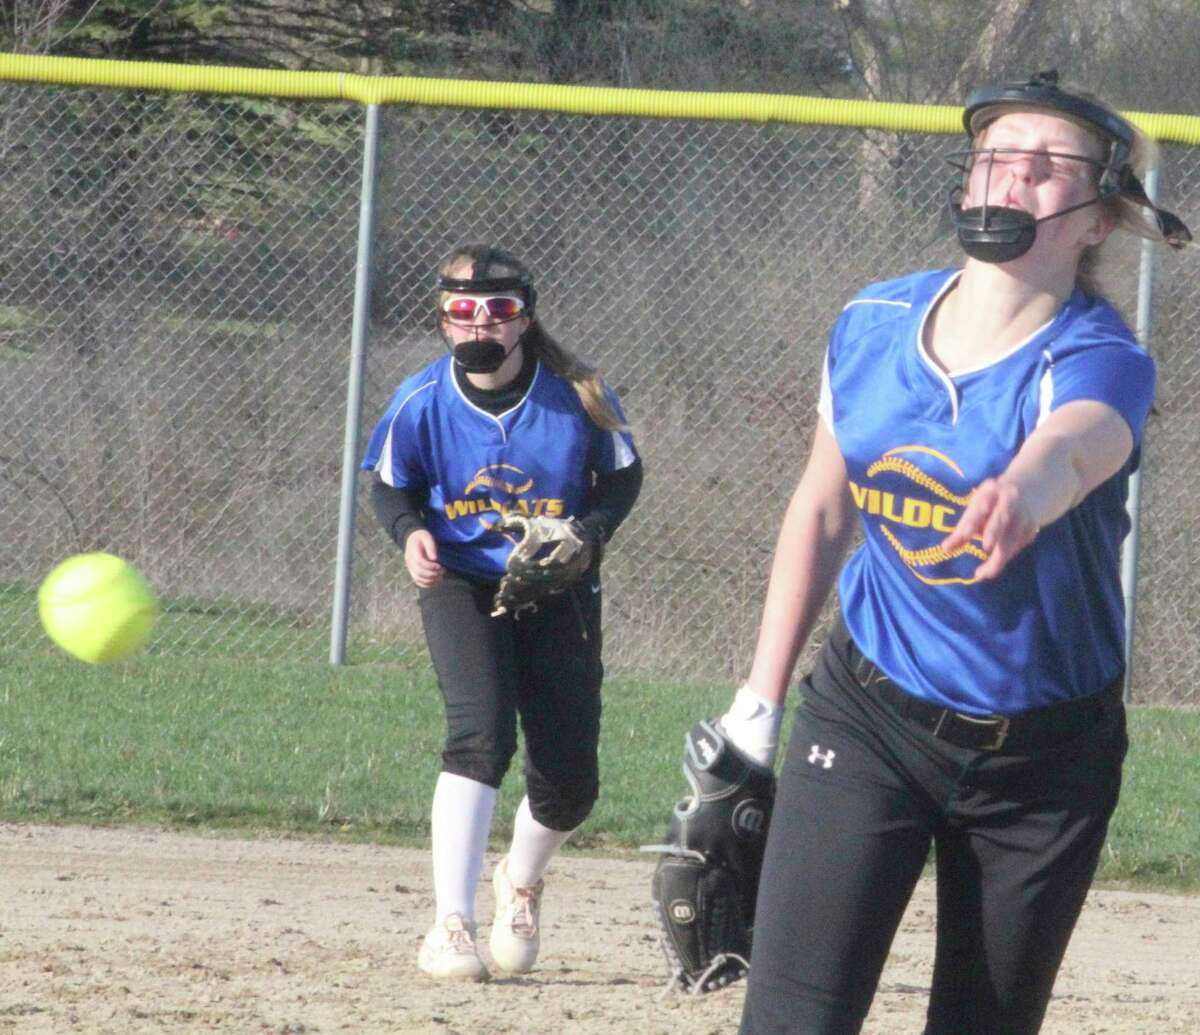 Evart's Addy Gray handled the pitching duties for the Wildcats on Saturday in the regional. (Pioneer file photo)